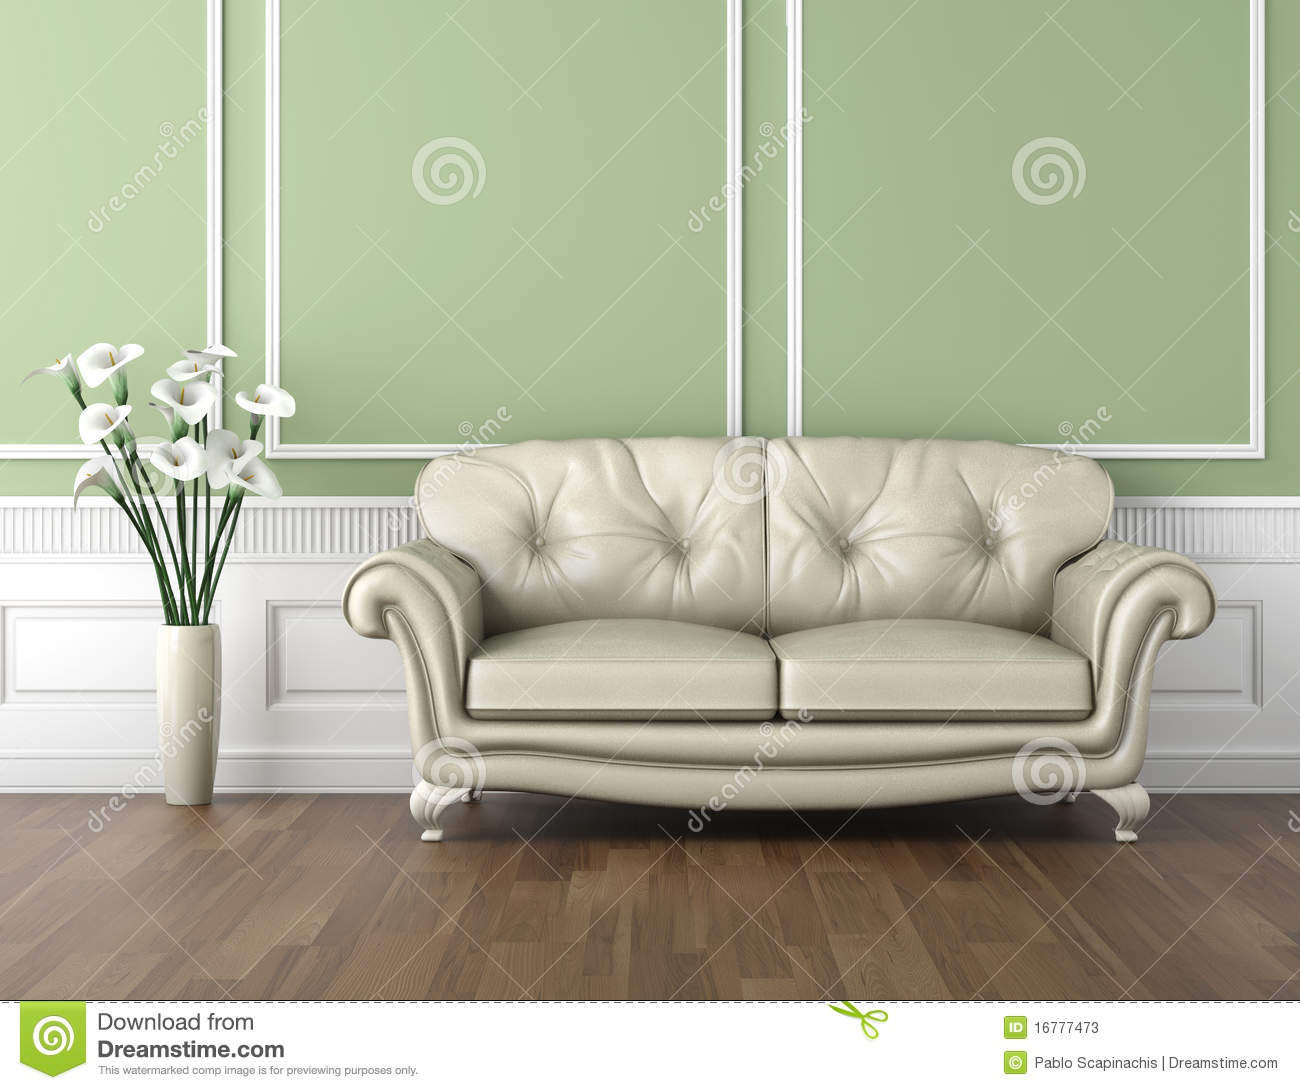 Classic Interior green and white classic interior stock photos - image: 16777473